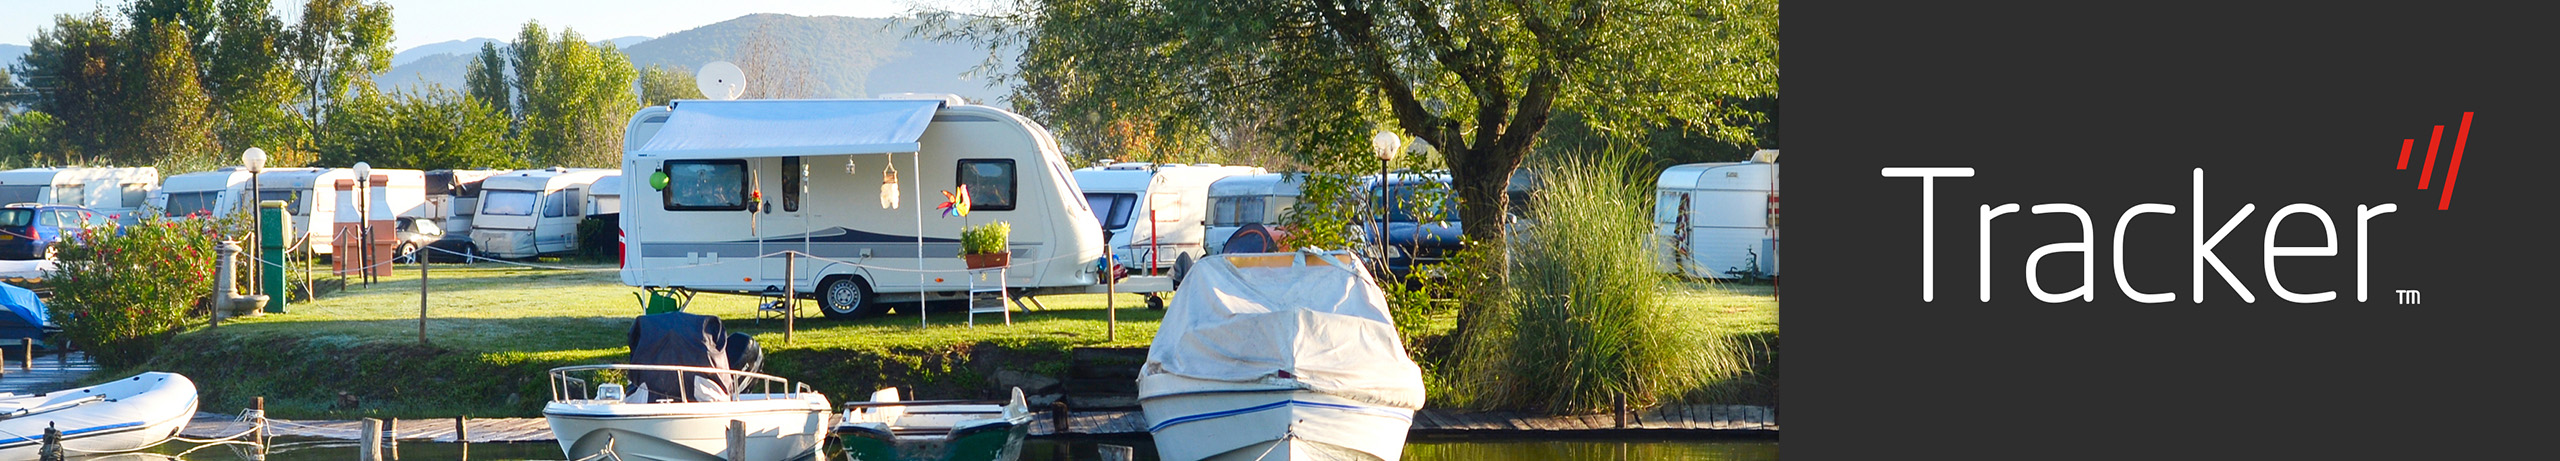 Home Away or in Storage protect your caravan by Tracker banner